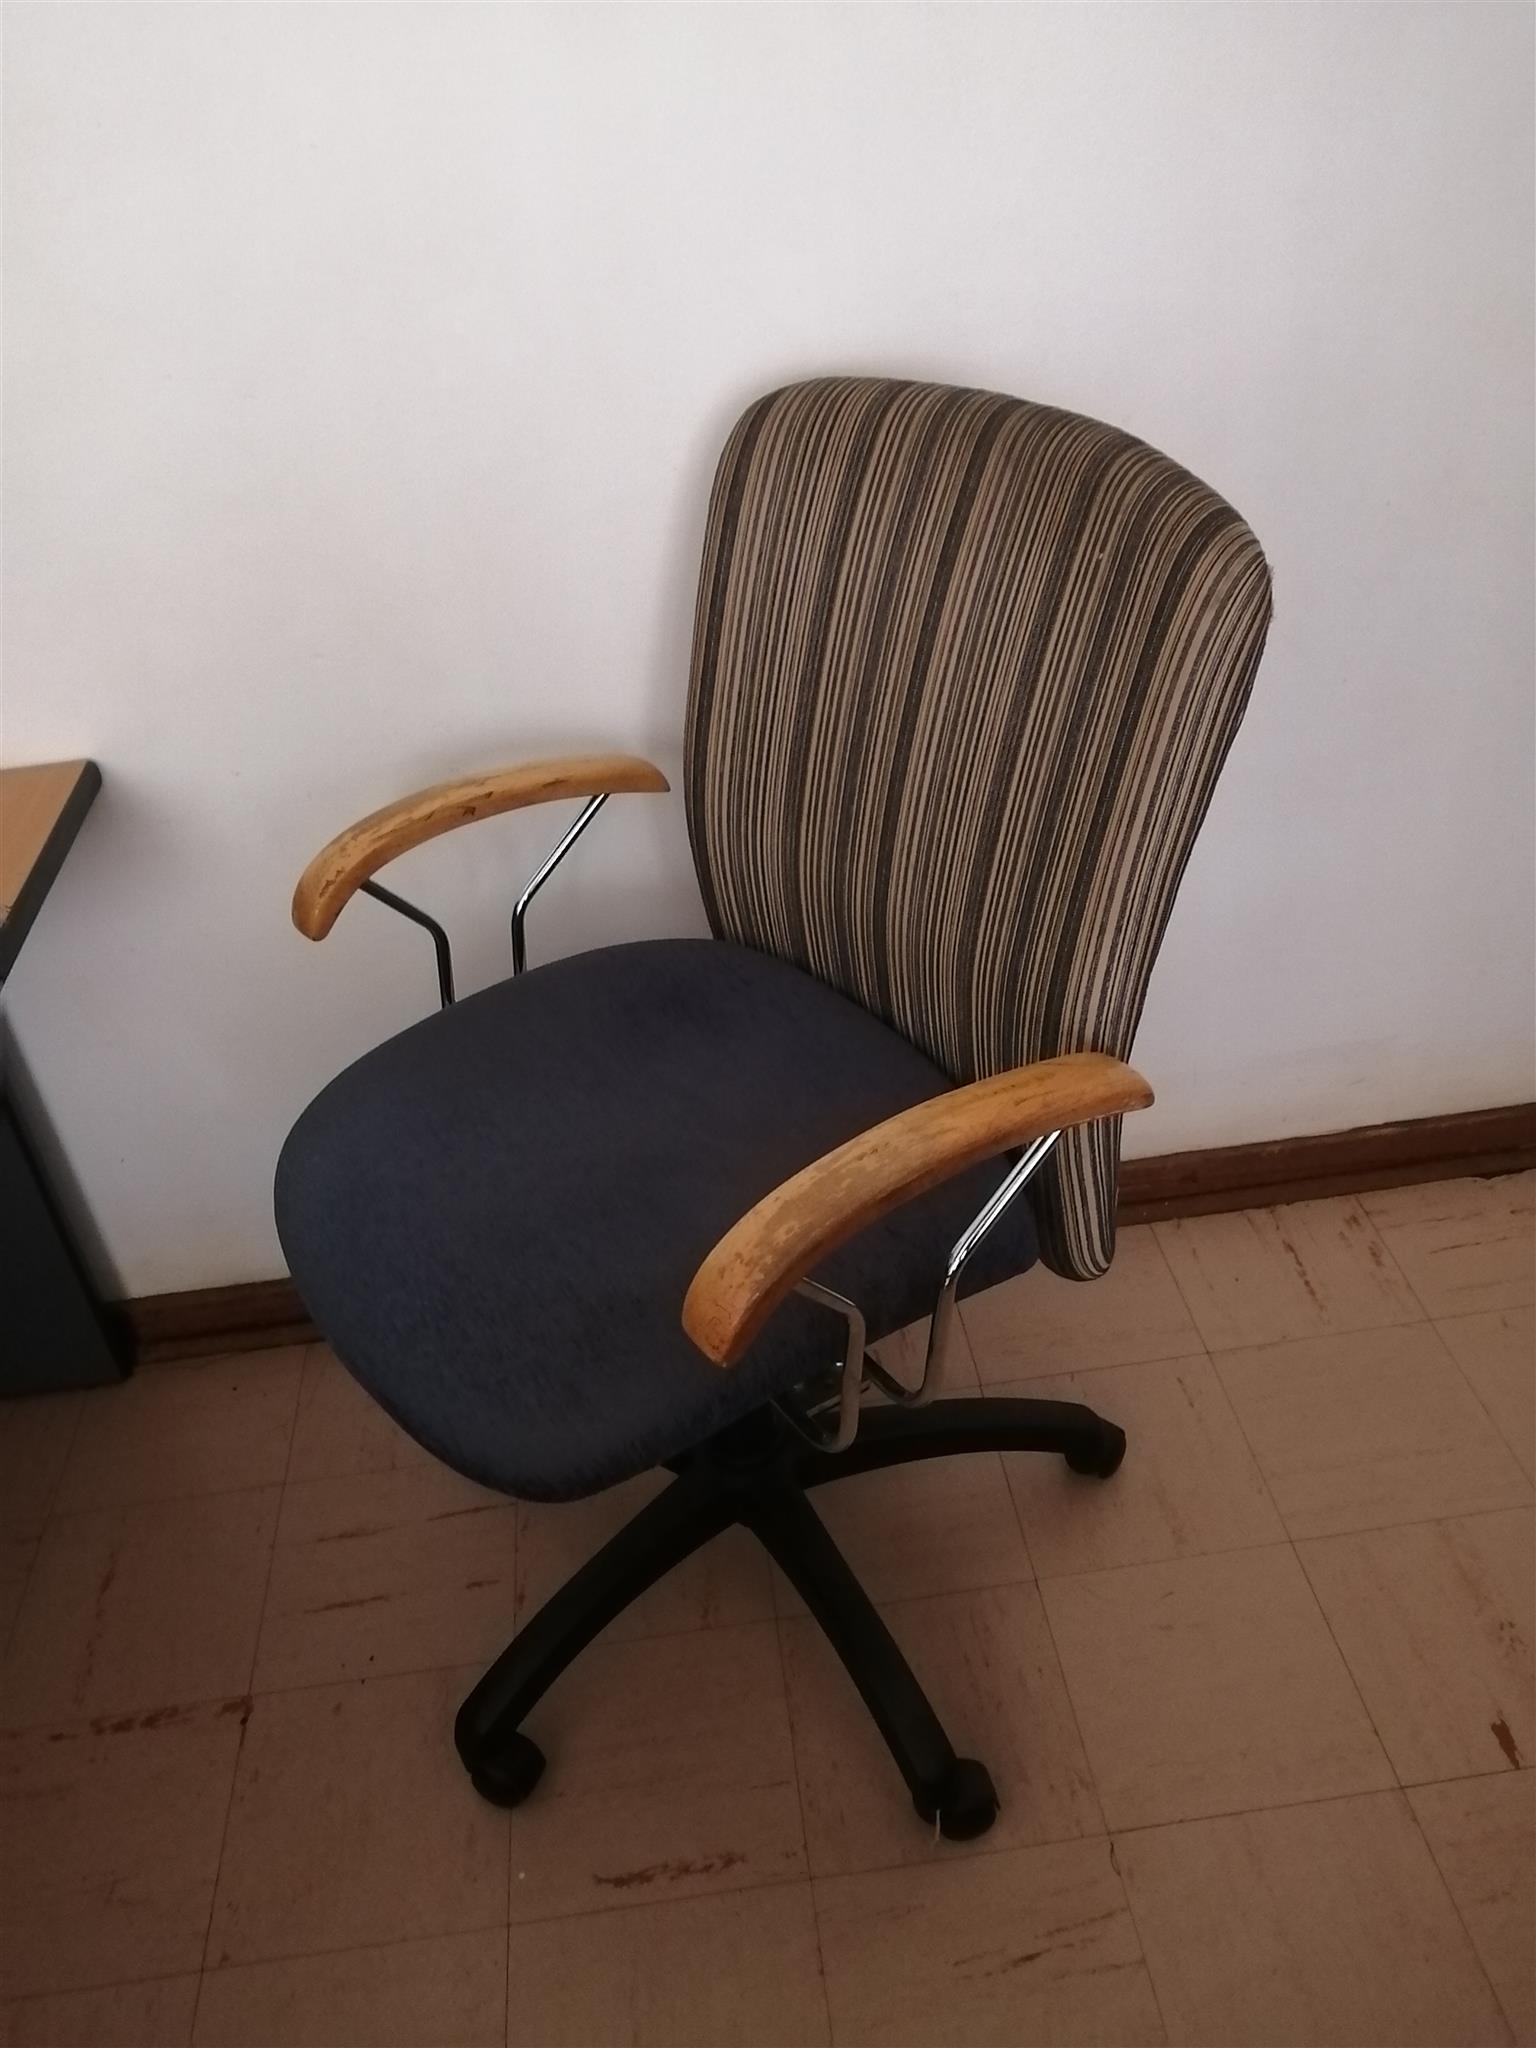 3x Office Swivel Chairs